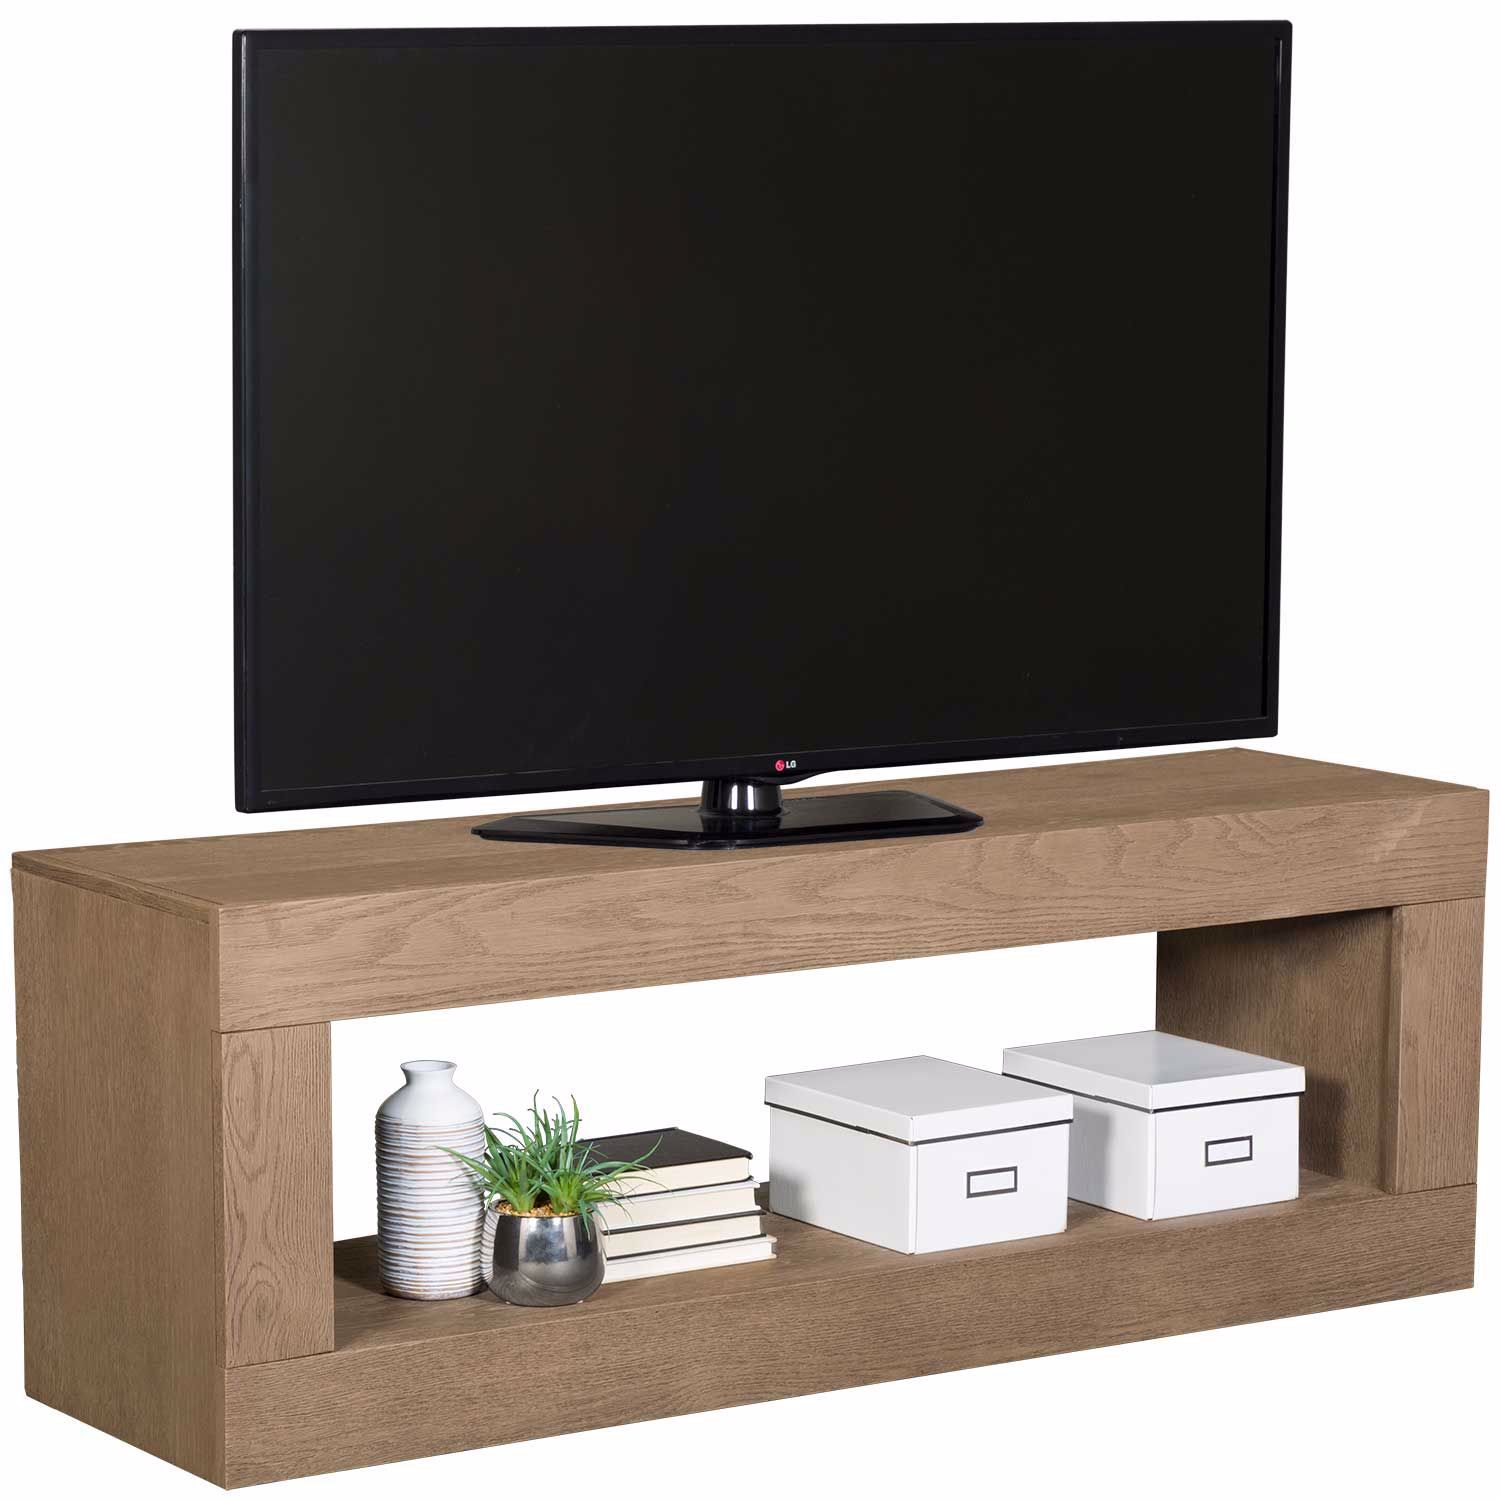 Picture of English Taupe Nova 60in Open Console